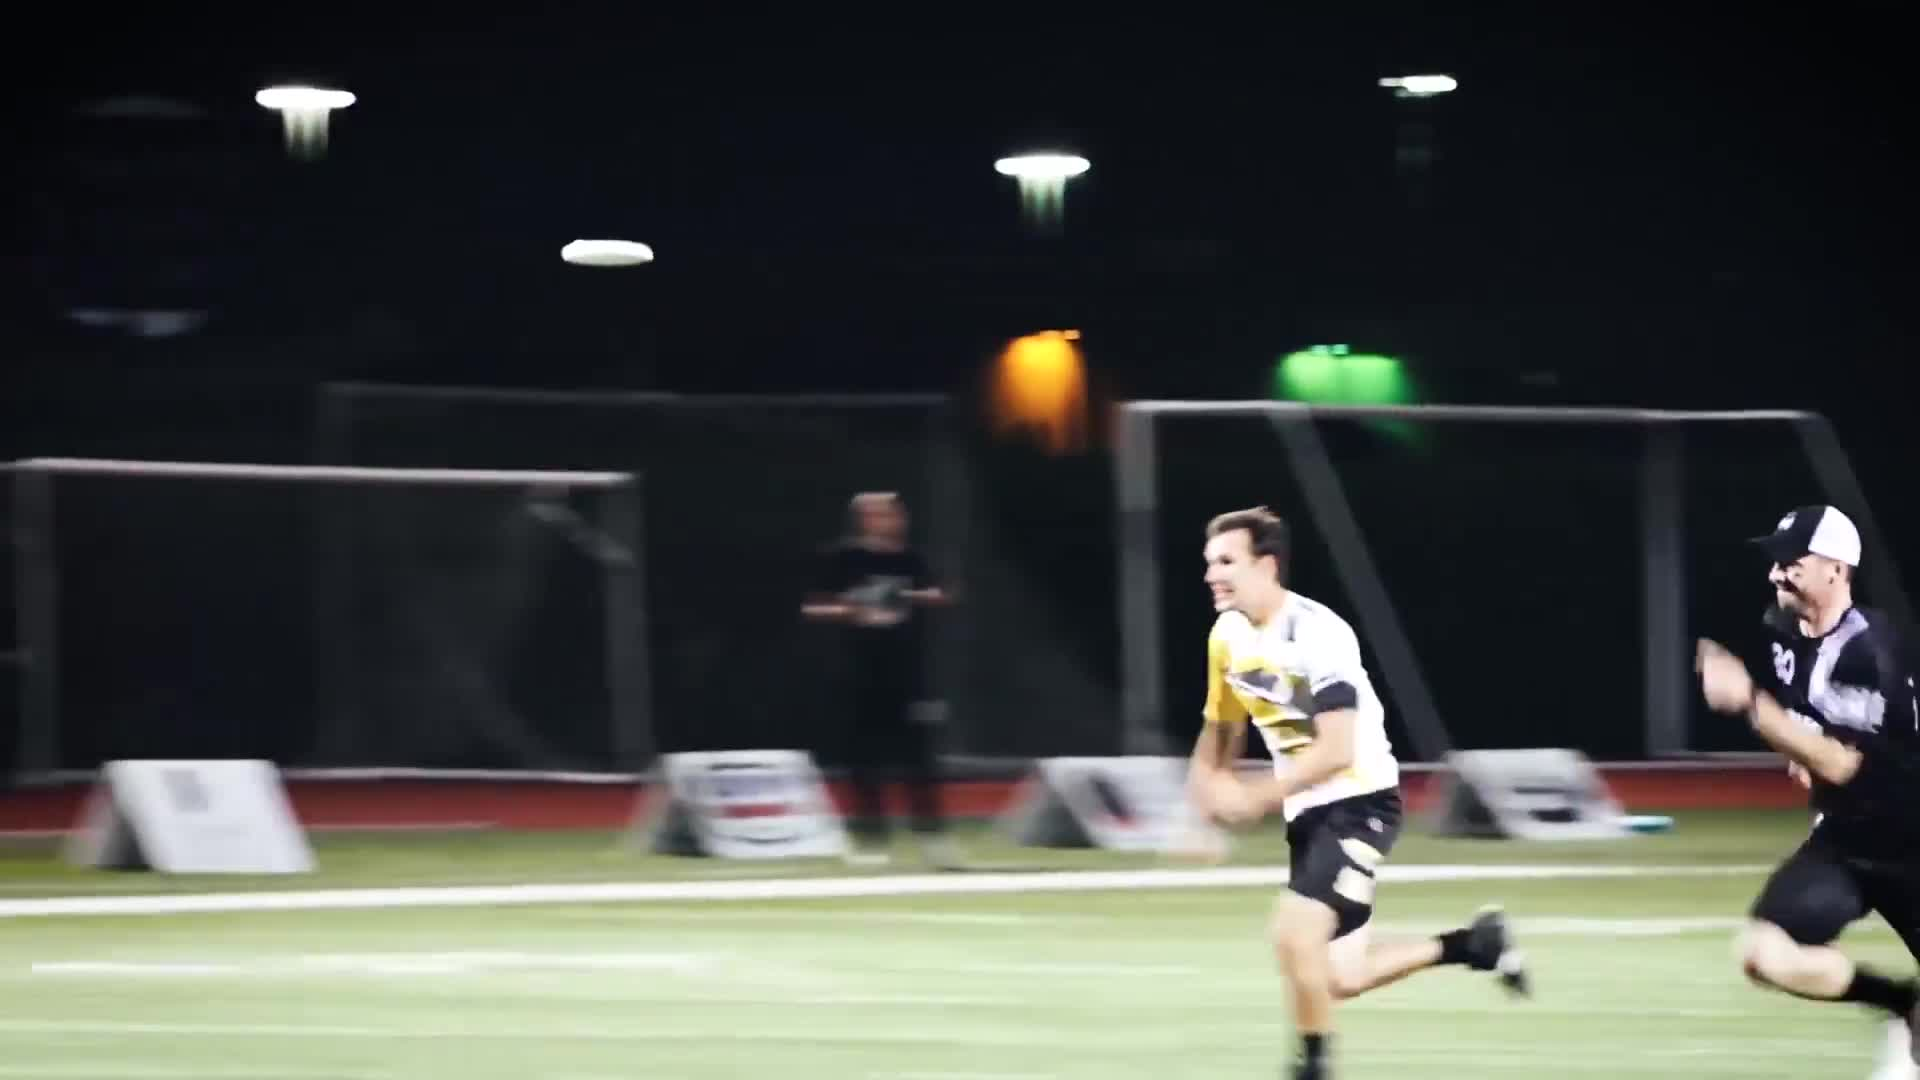 american ultimate disc league, audl, pro ultimate, ultimate, ultimate frisbee, Eric Johnson Double Layout Goal GIFs